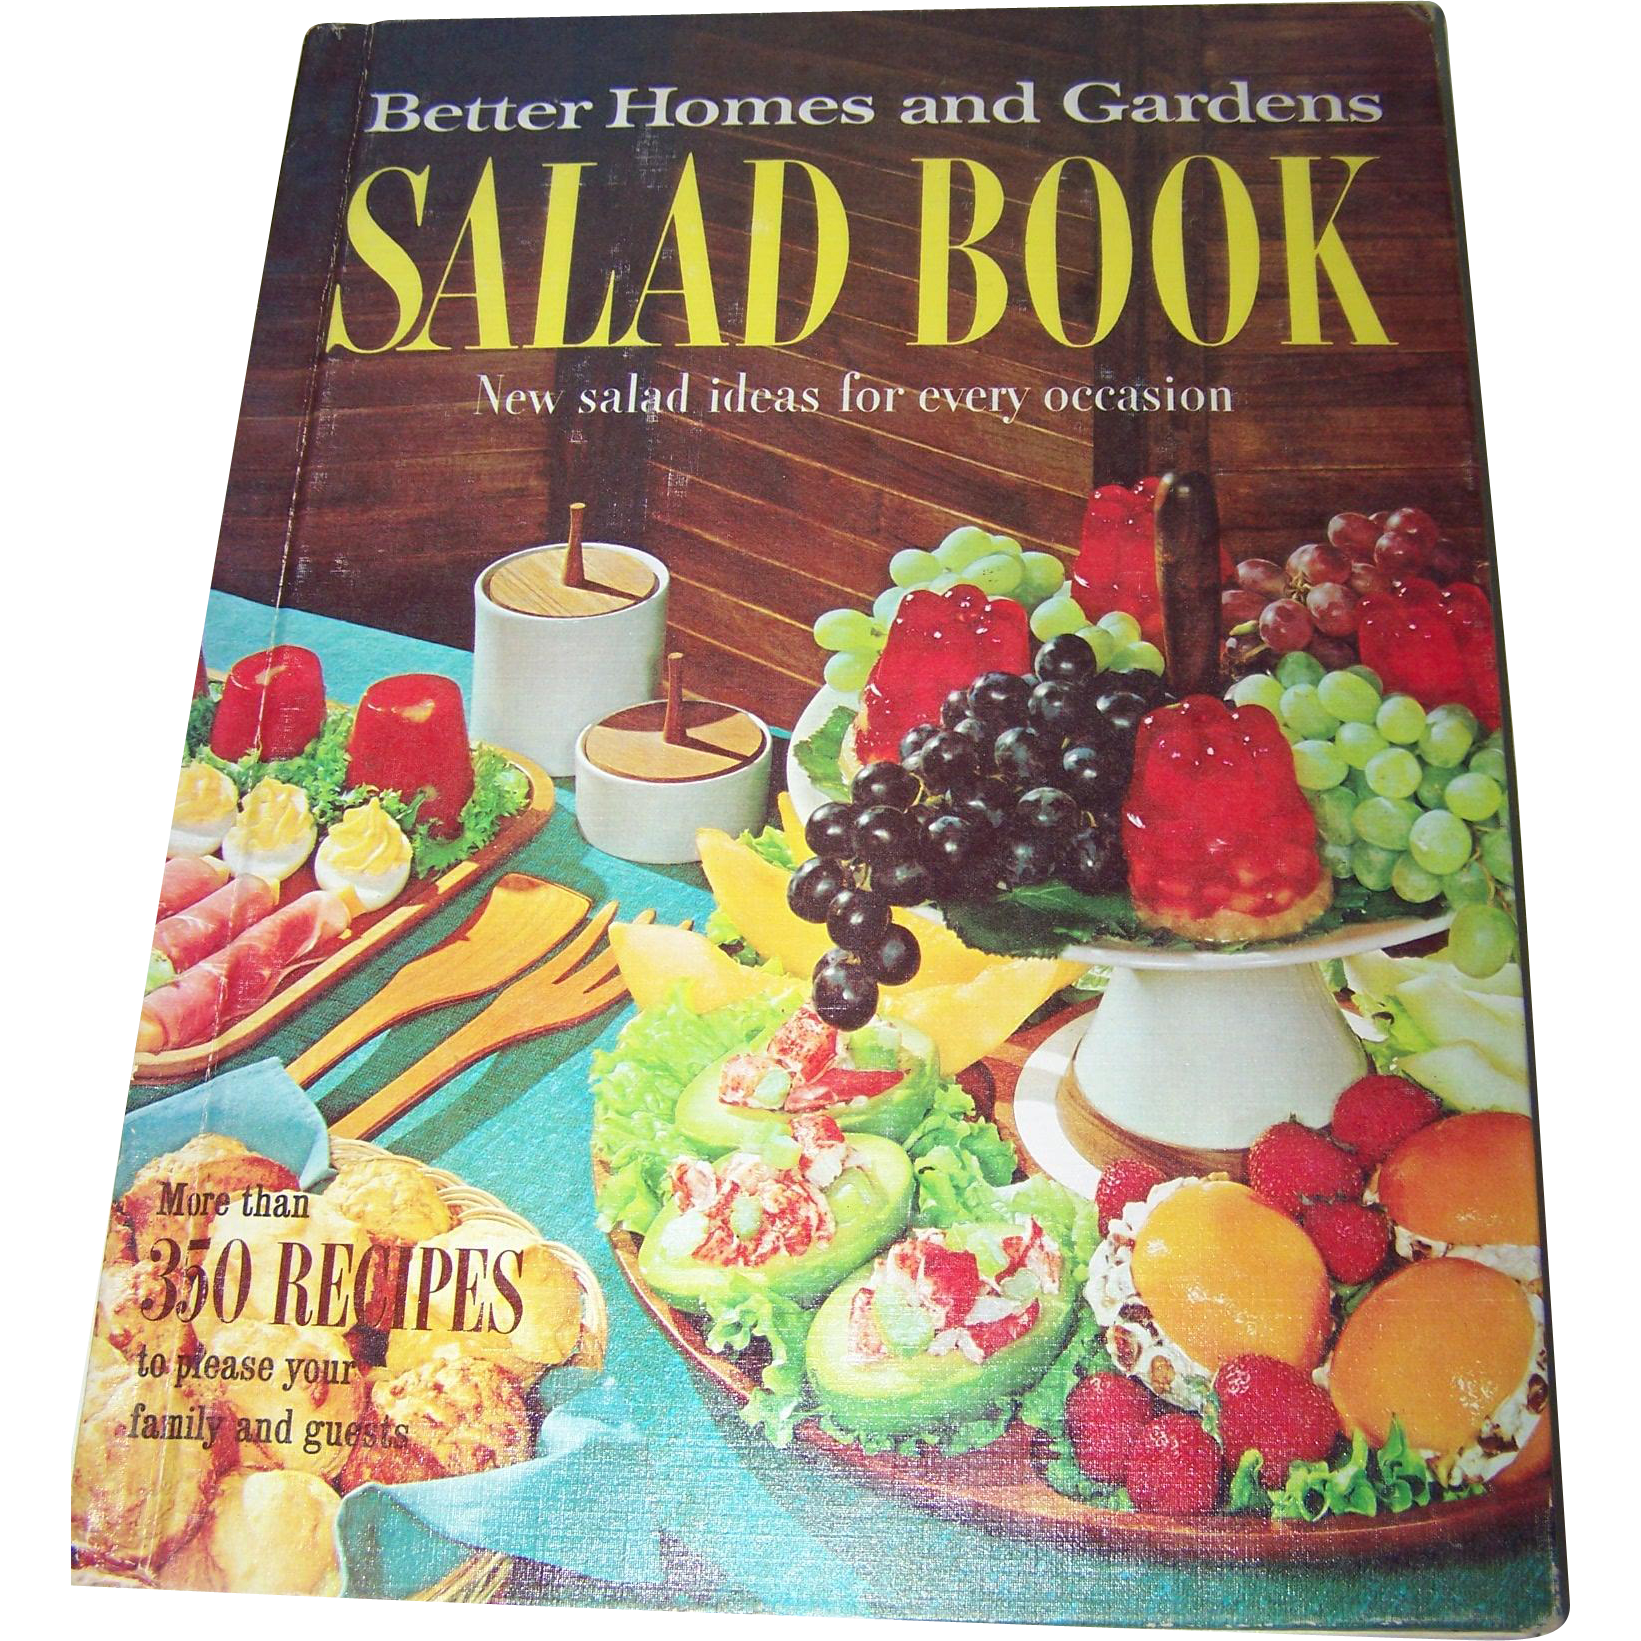 Better Homes And Gardens Salad Book New Salad For Every Occasion From Victoriasjems On Ruby Lane